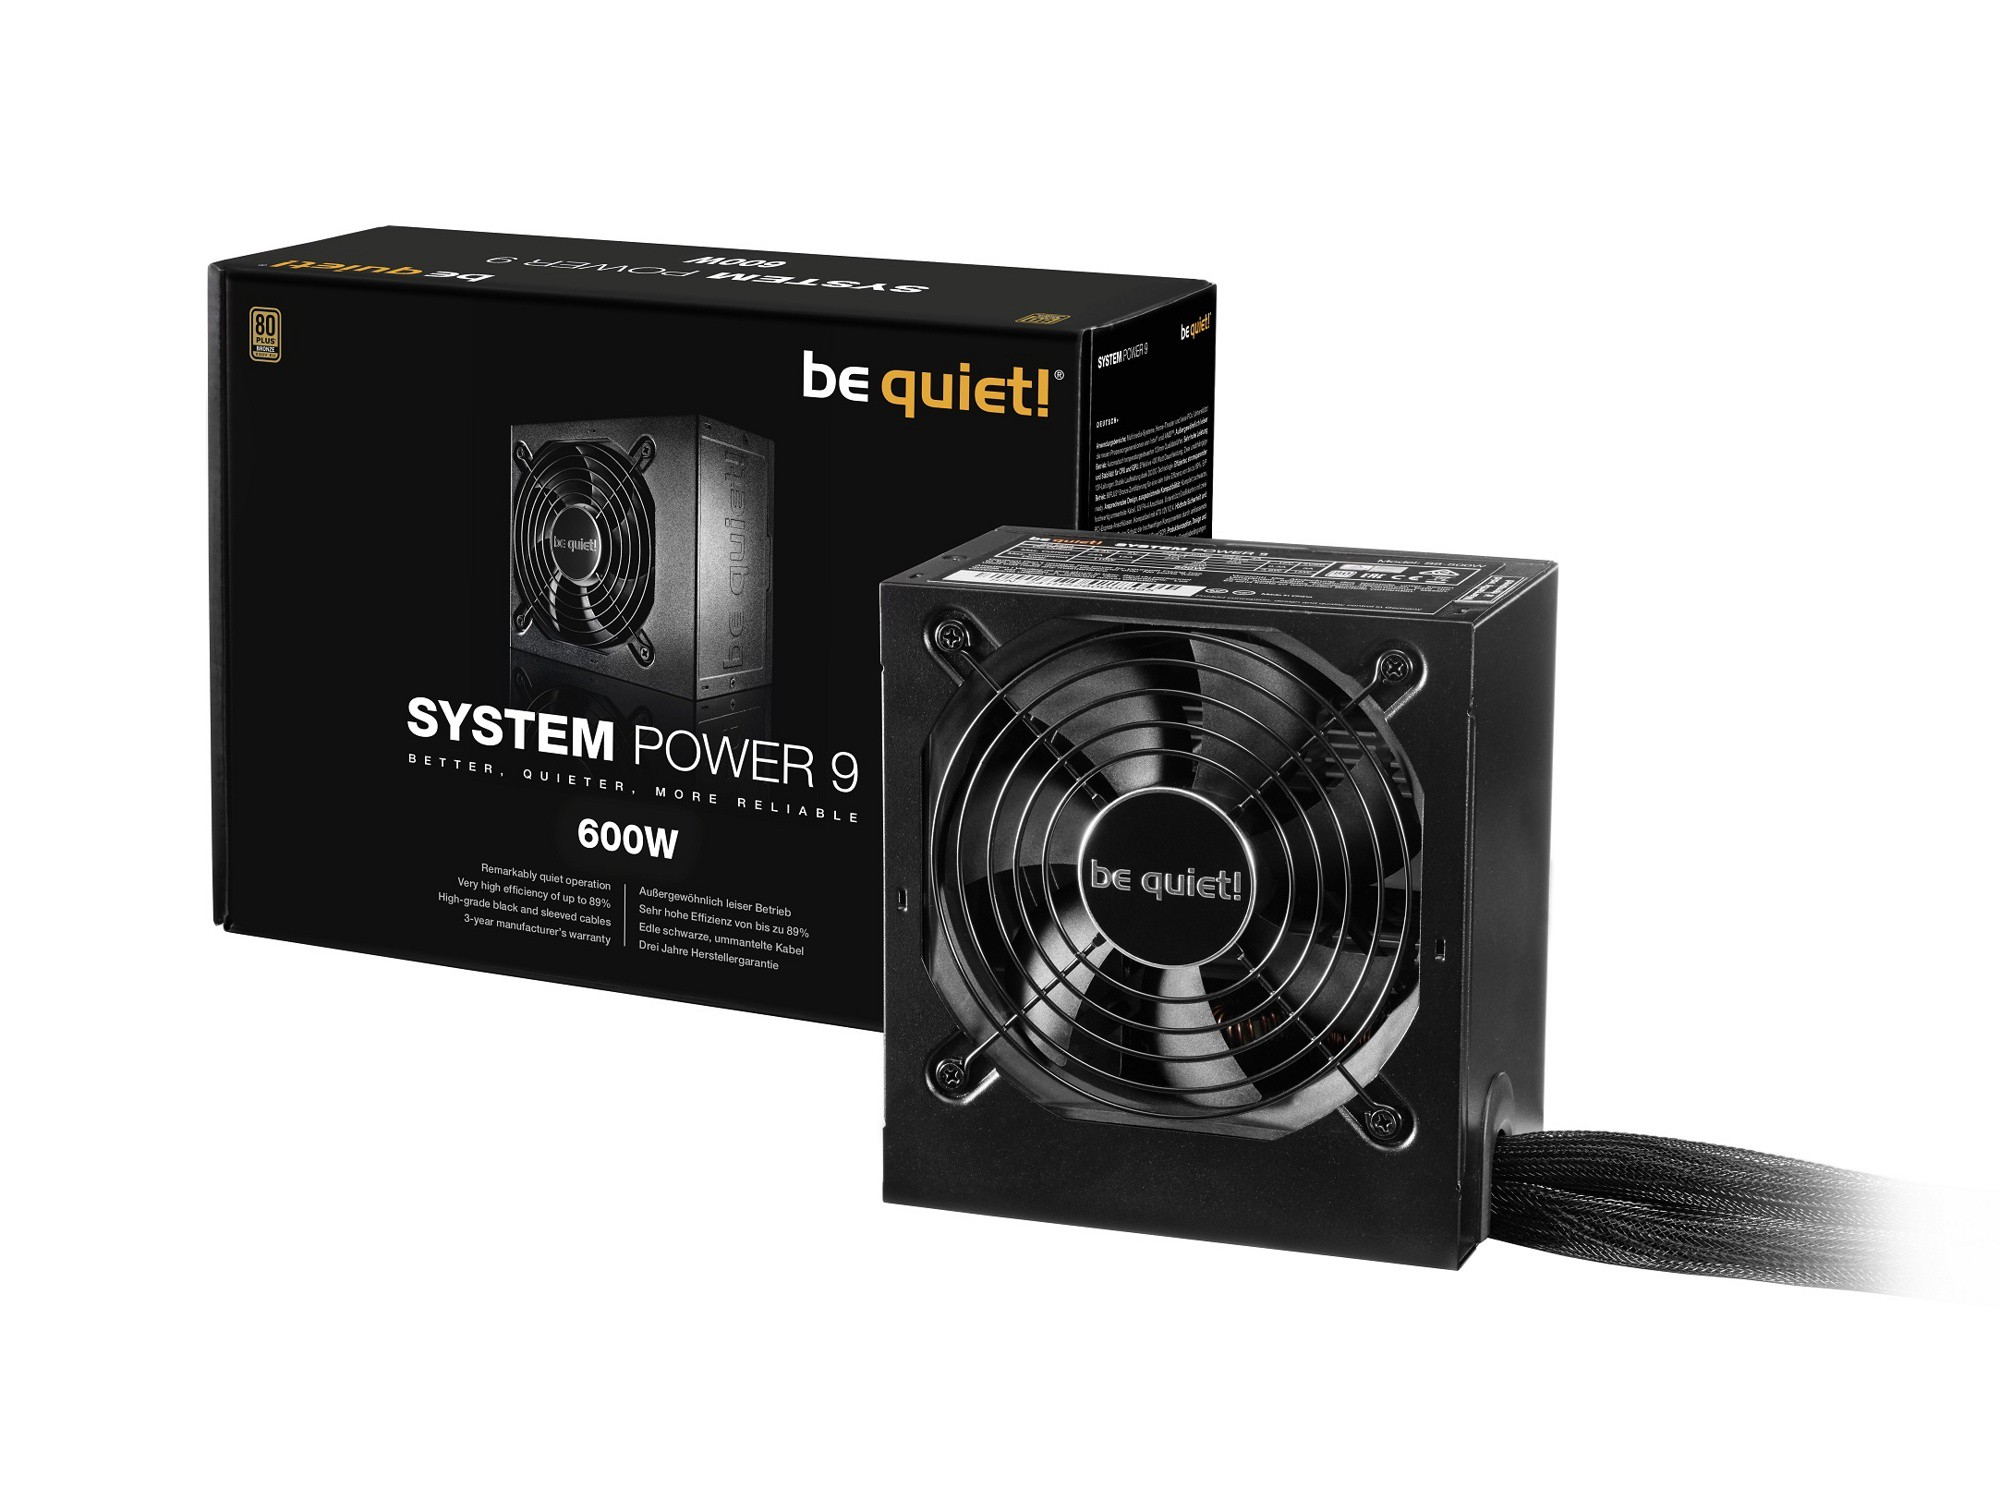 Блок питания 600W be quiet! System Power 9 600W (BN247)  (24+8pin, 2x6/8pin, 2xMolex, 6xSATA, 80+ Bronze)